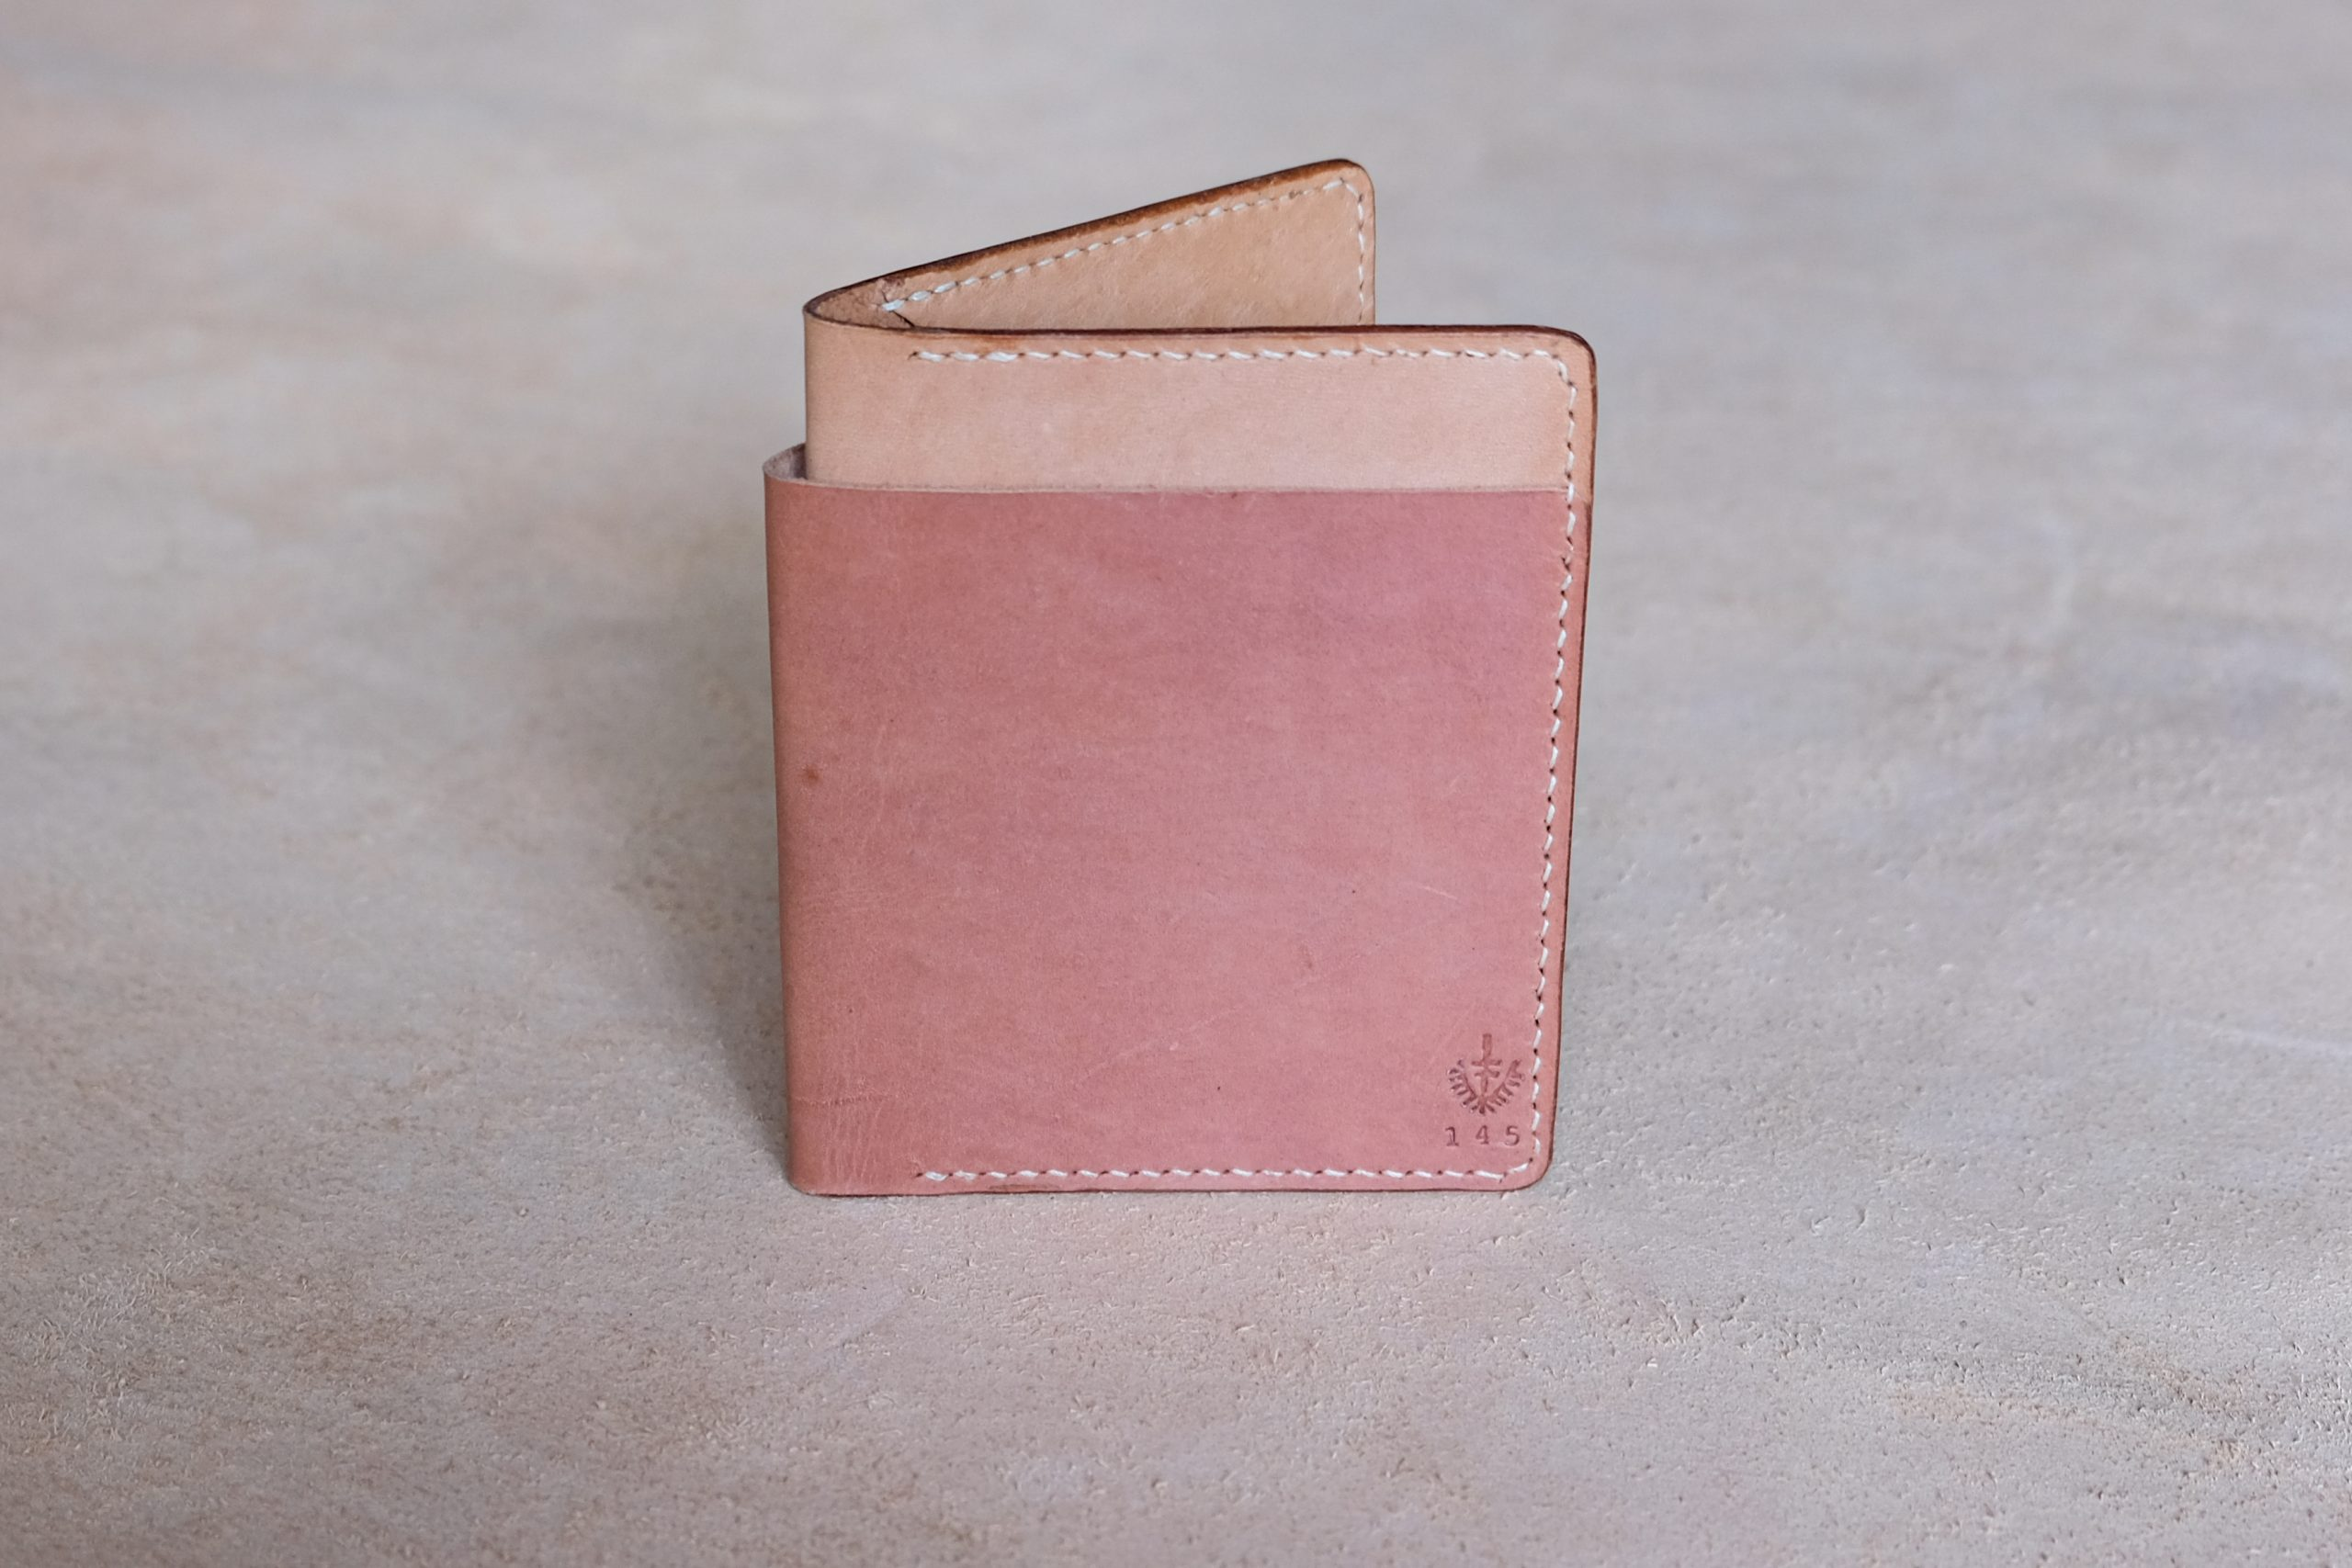 lerif designs large format leather bifold wallet in beet natural on beige background